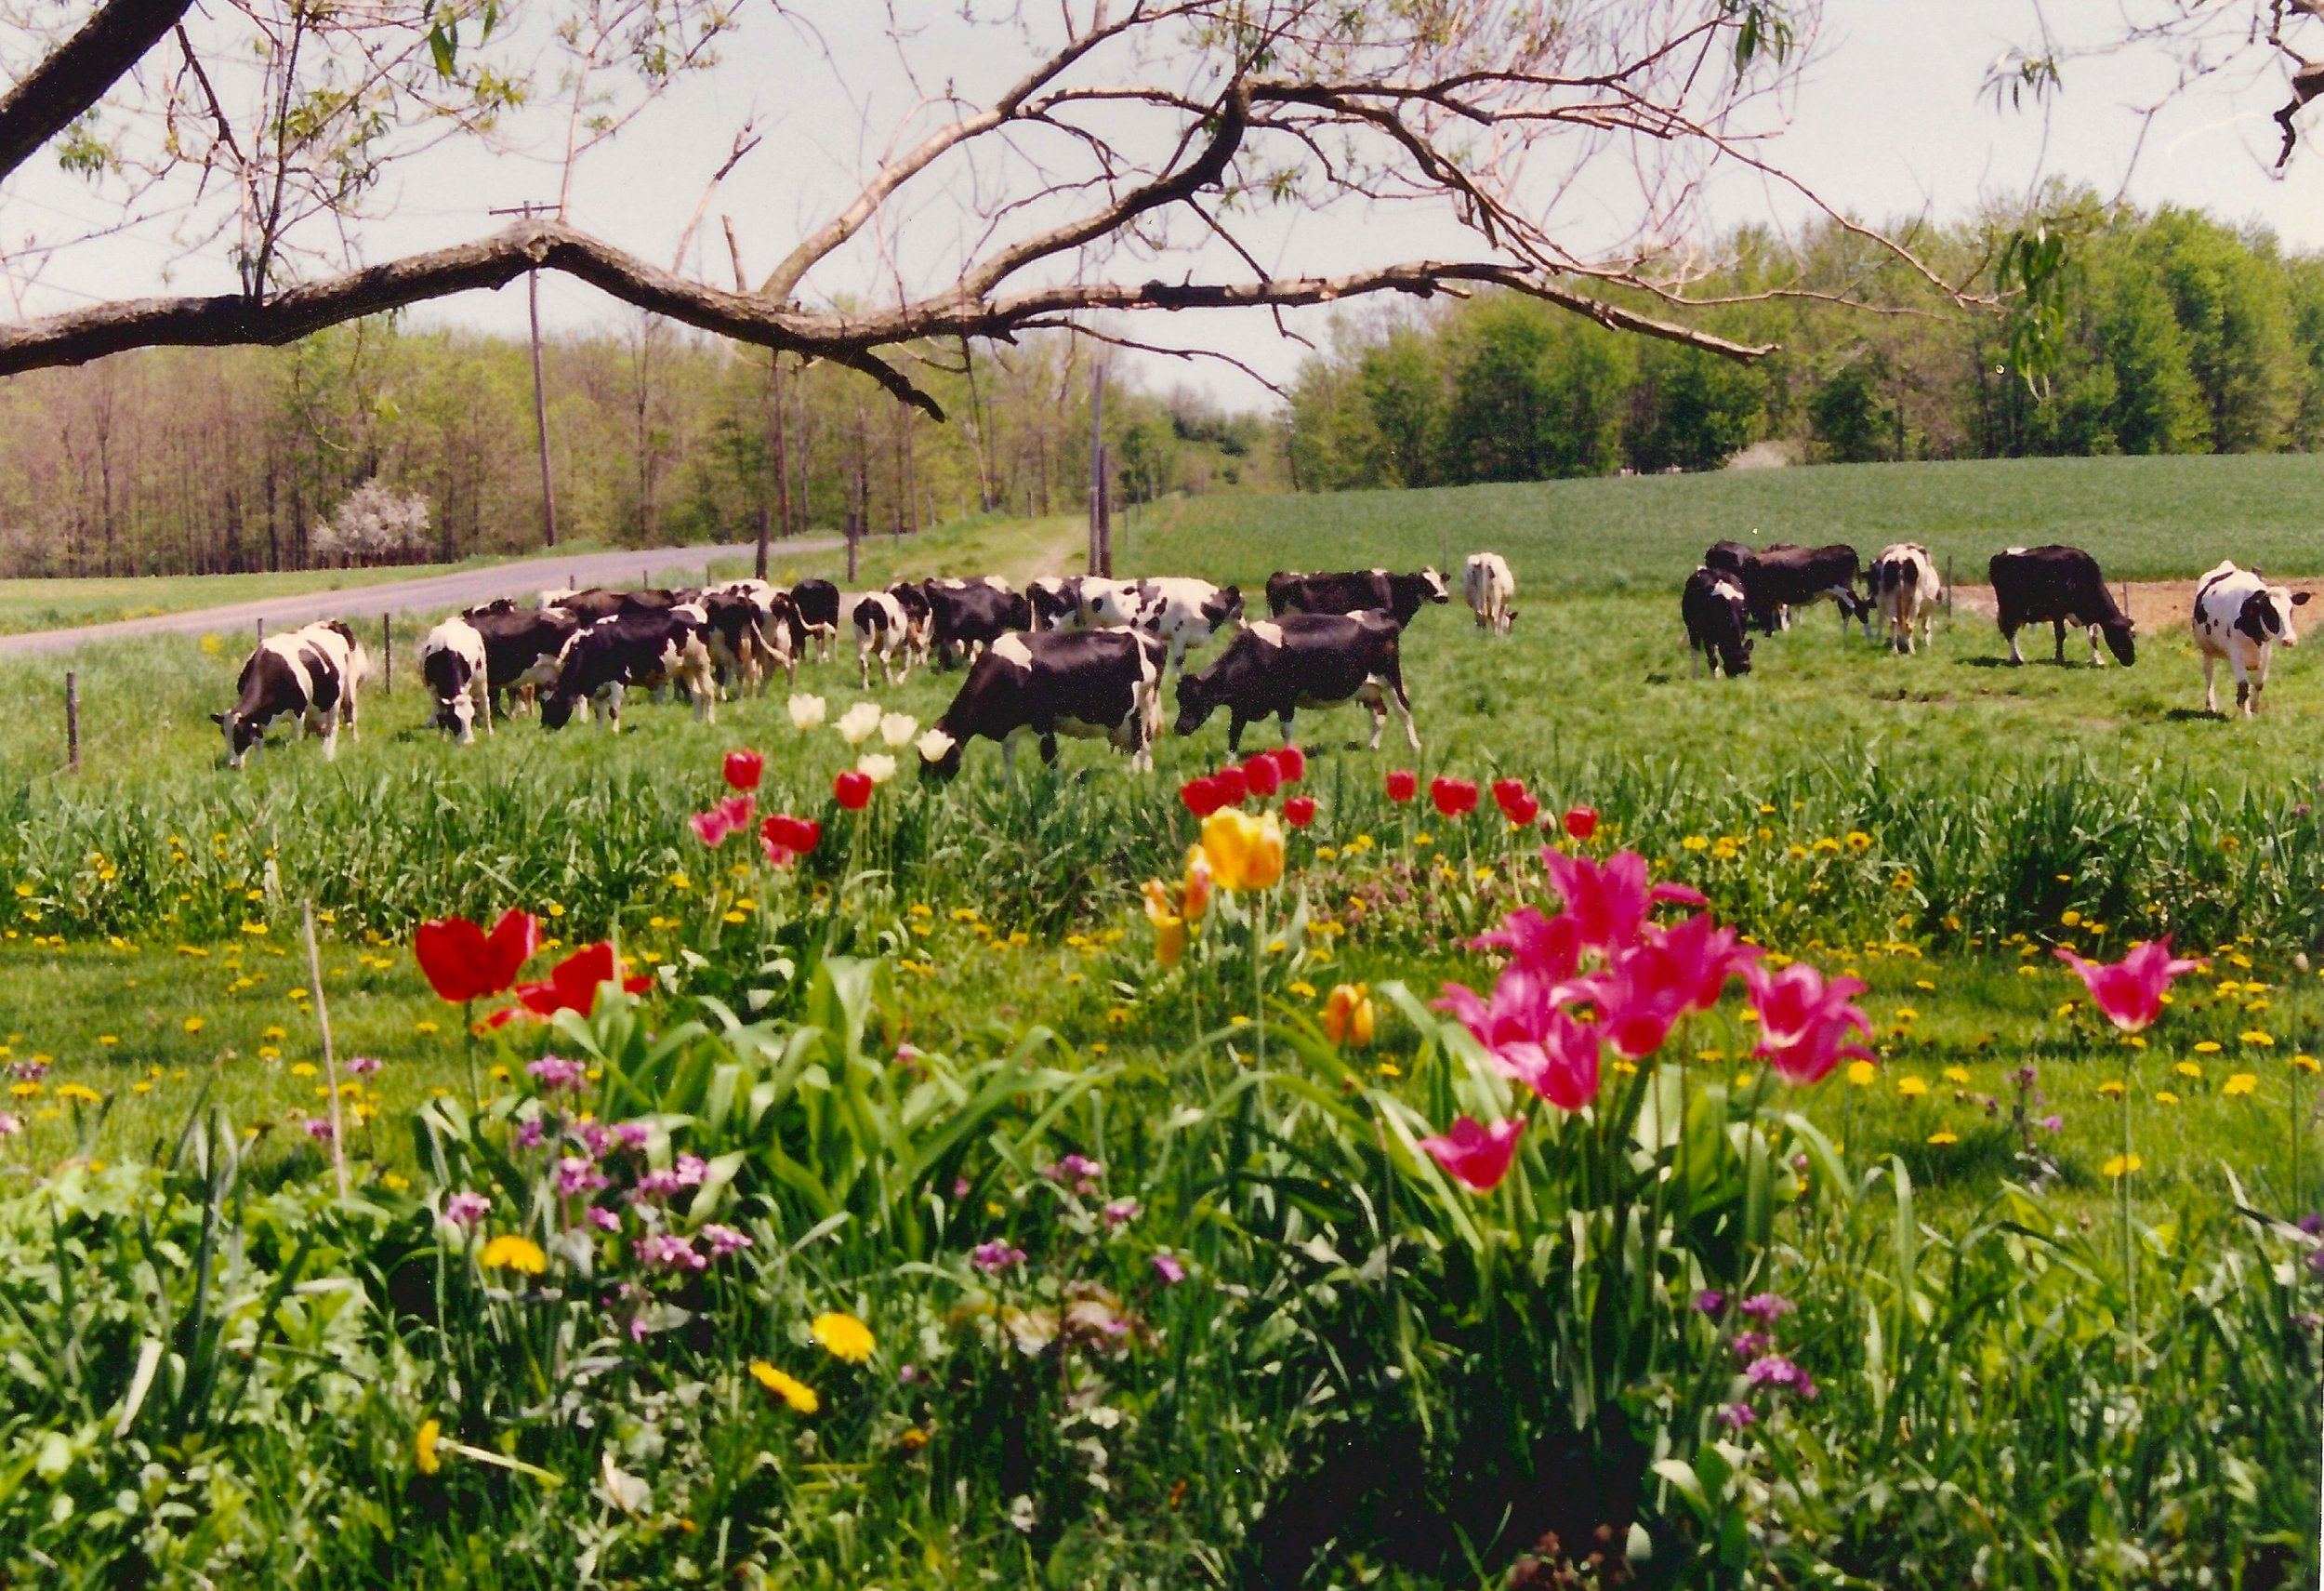 DeMinck spring -- tulips and cows.jpeg